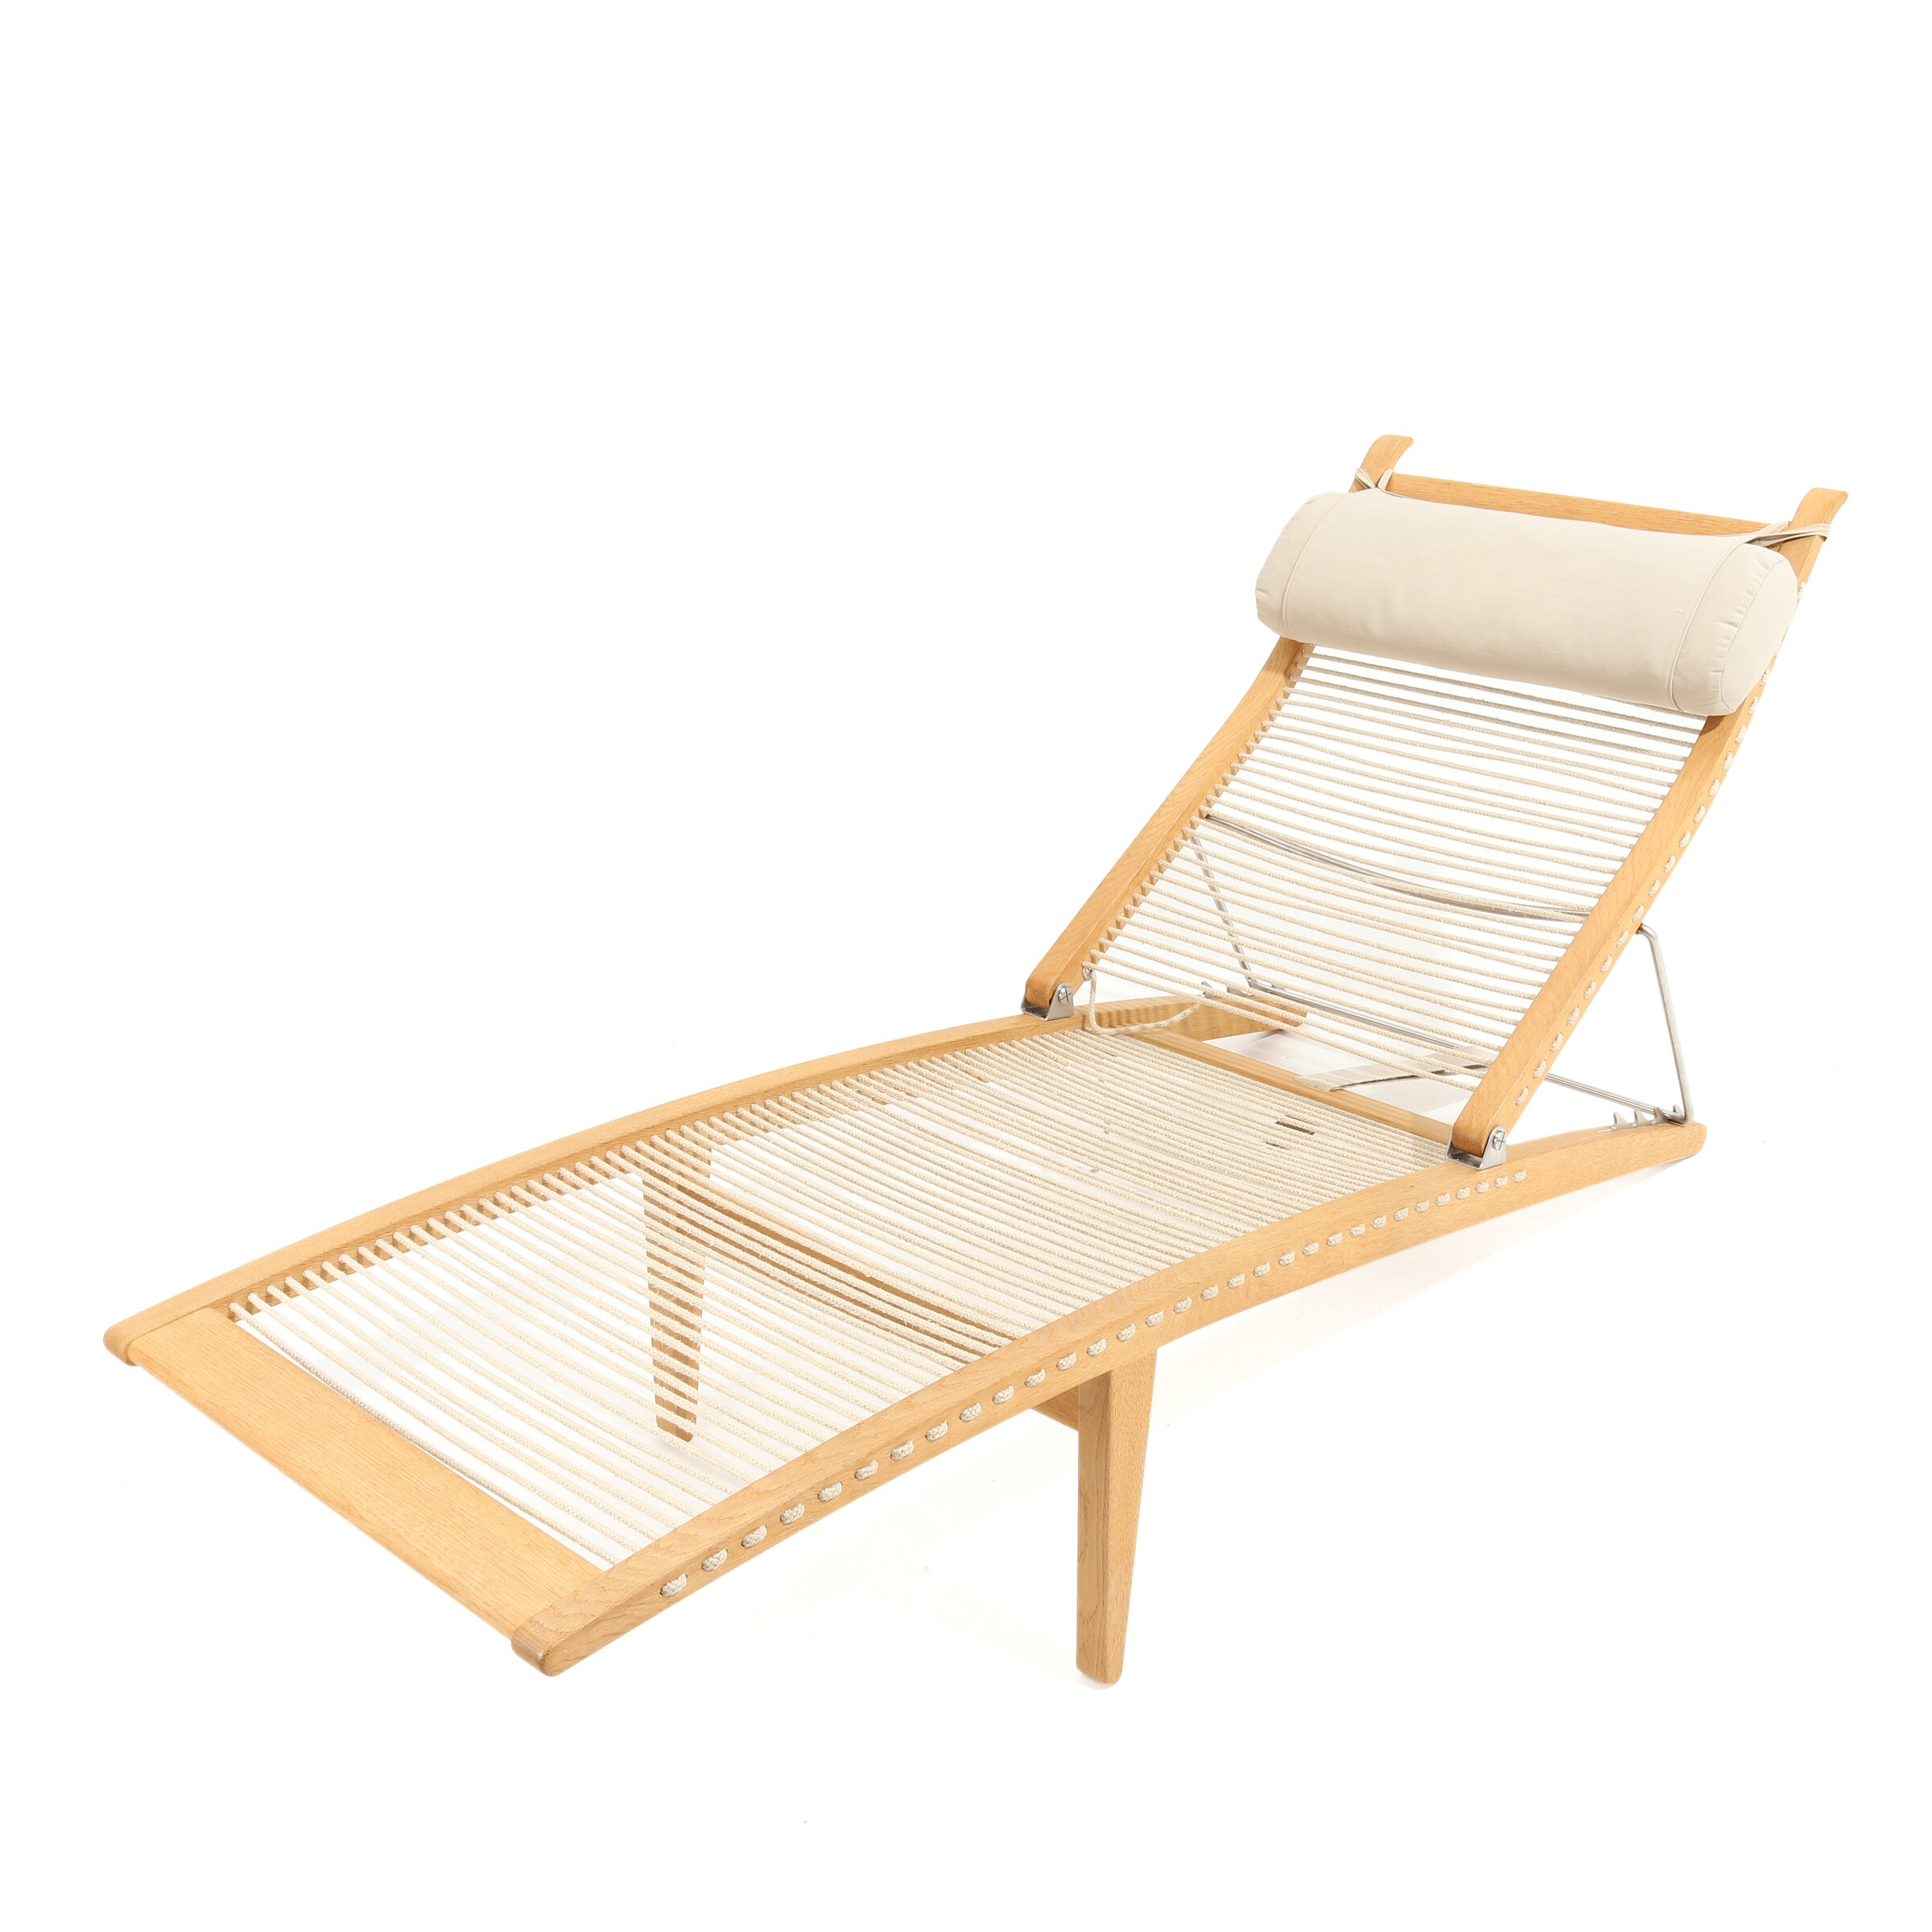 _PP_524_An_oak_deck_chair_seat_and_back_w-2